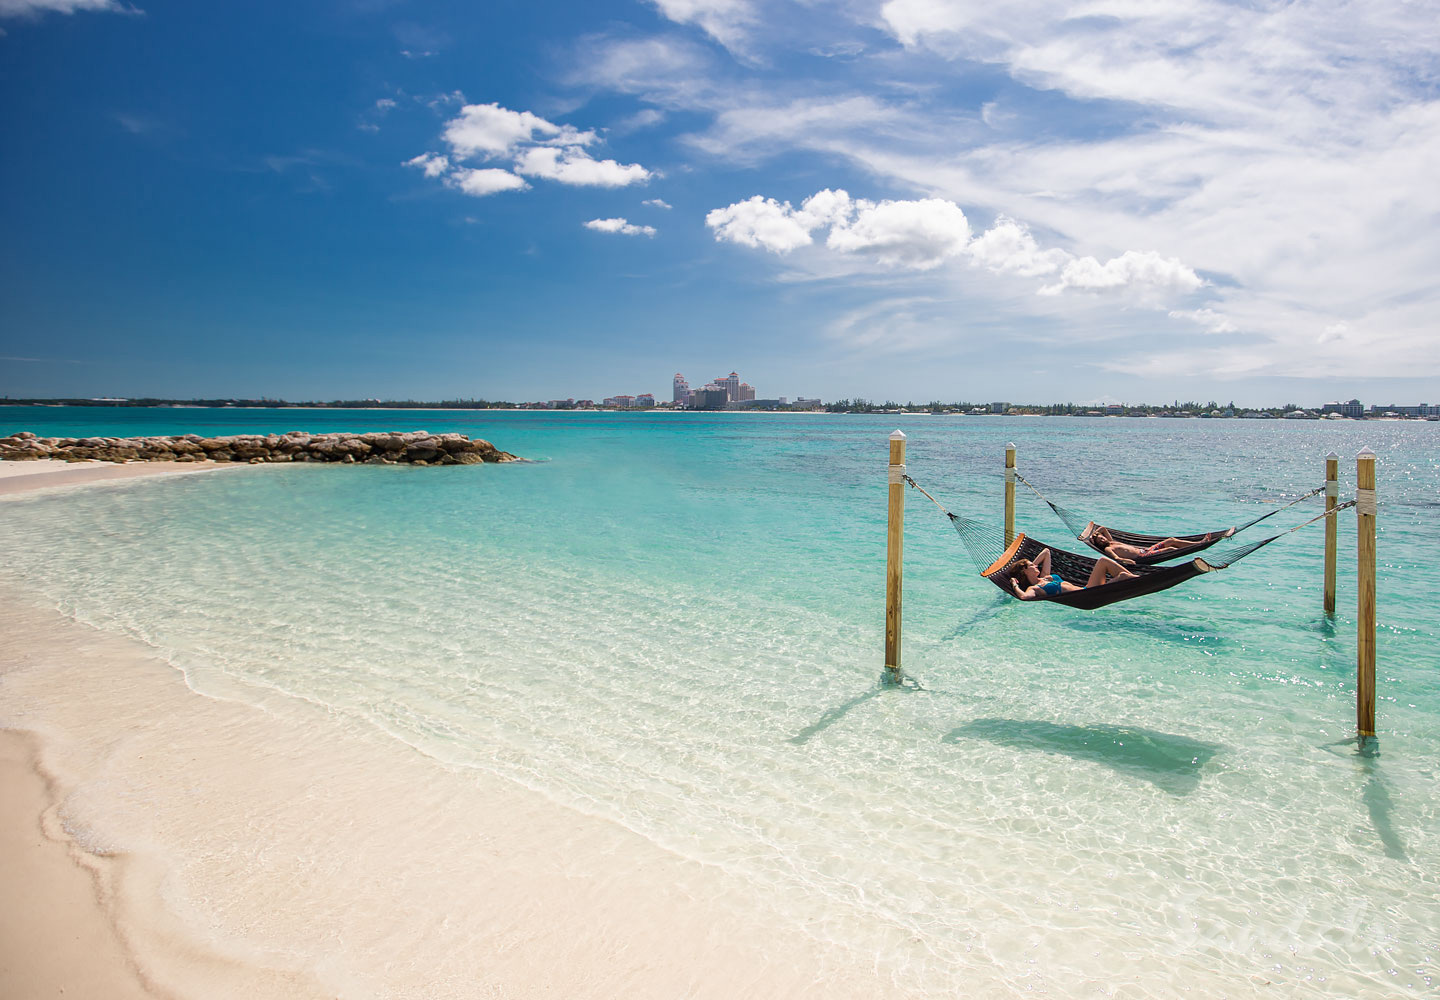 Travel Agency All-Inclusive Resort Sandals Royal Bahamian 130